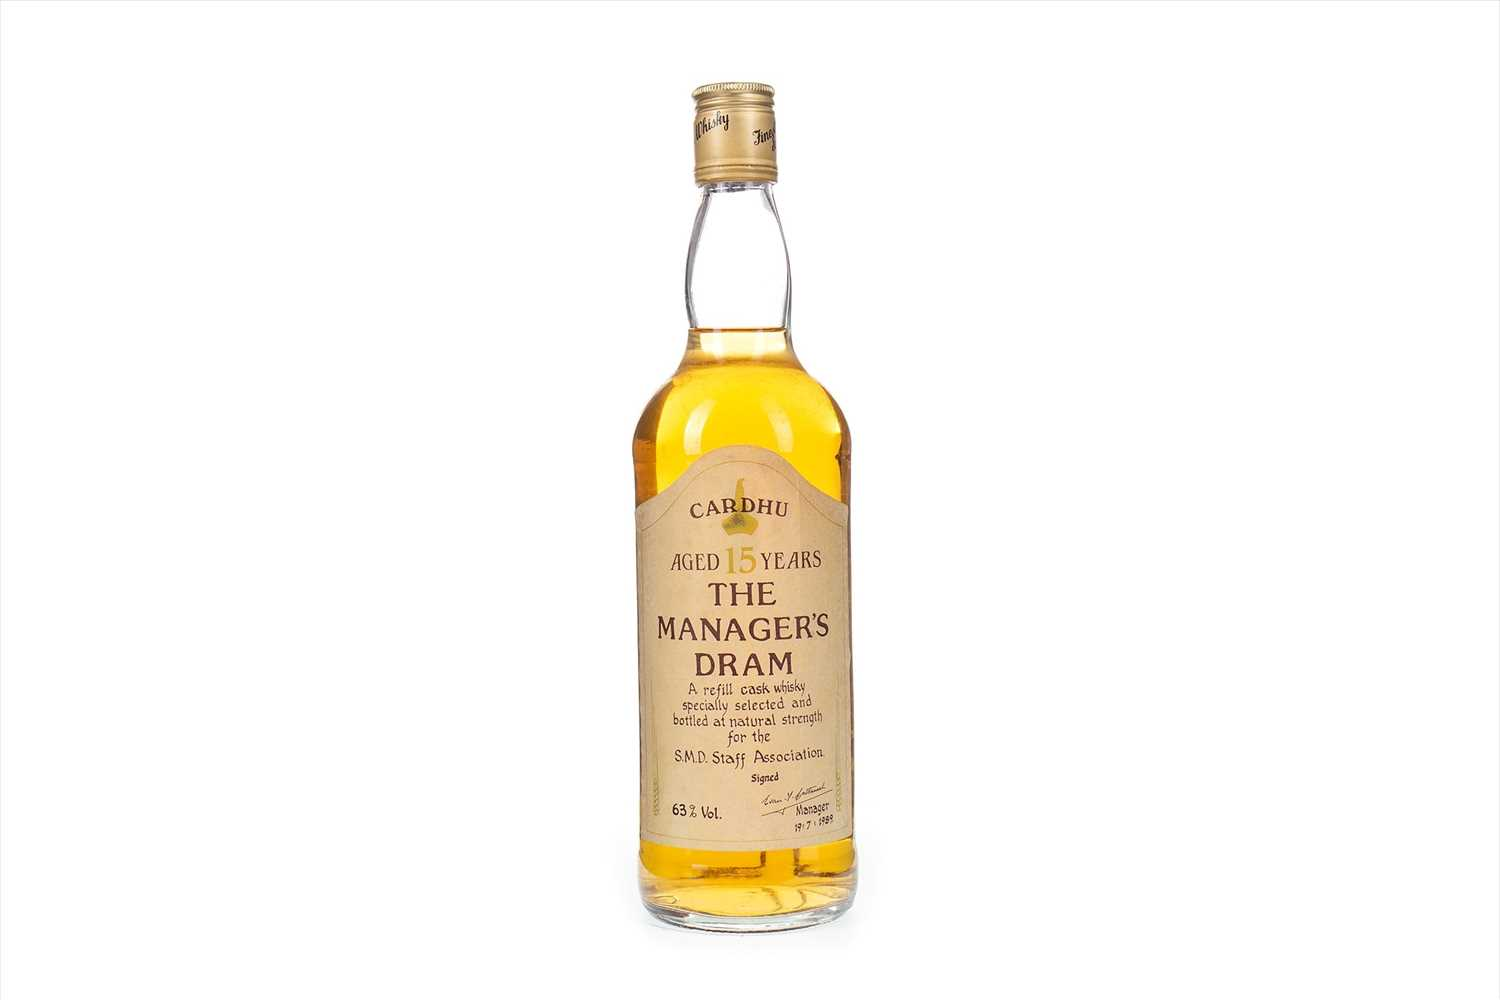 Lot 7-CARDHU MANAGERS DRAM AGED 15 YEARS